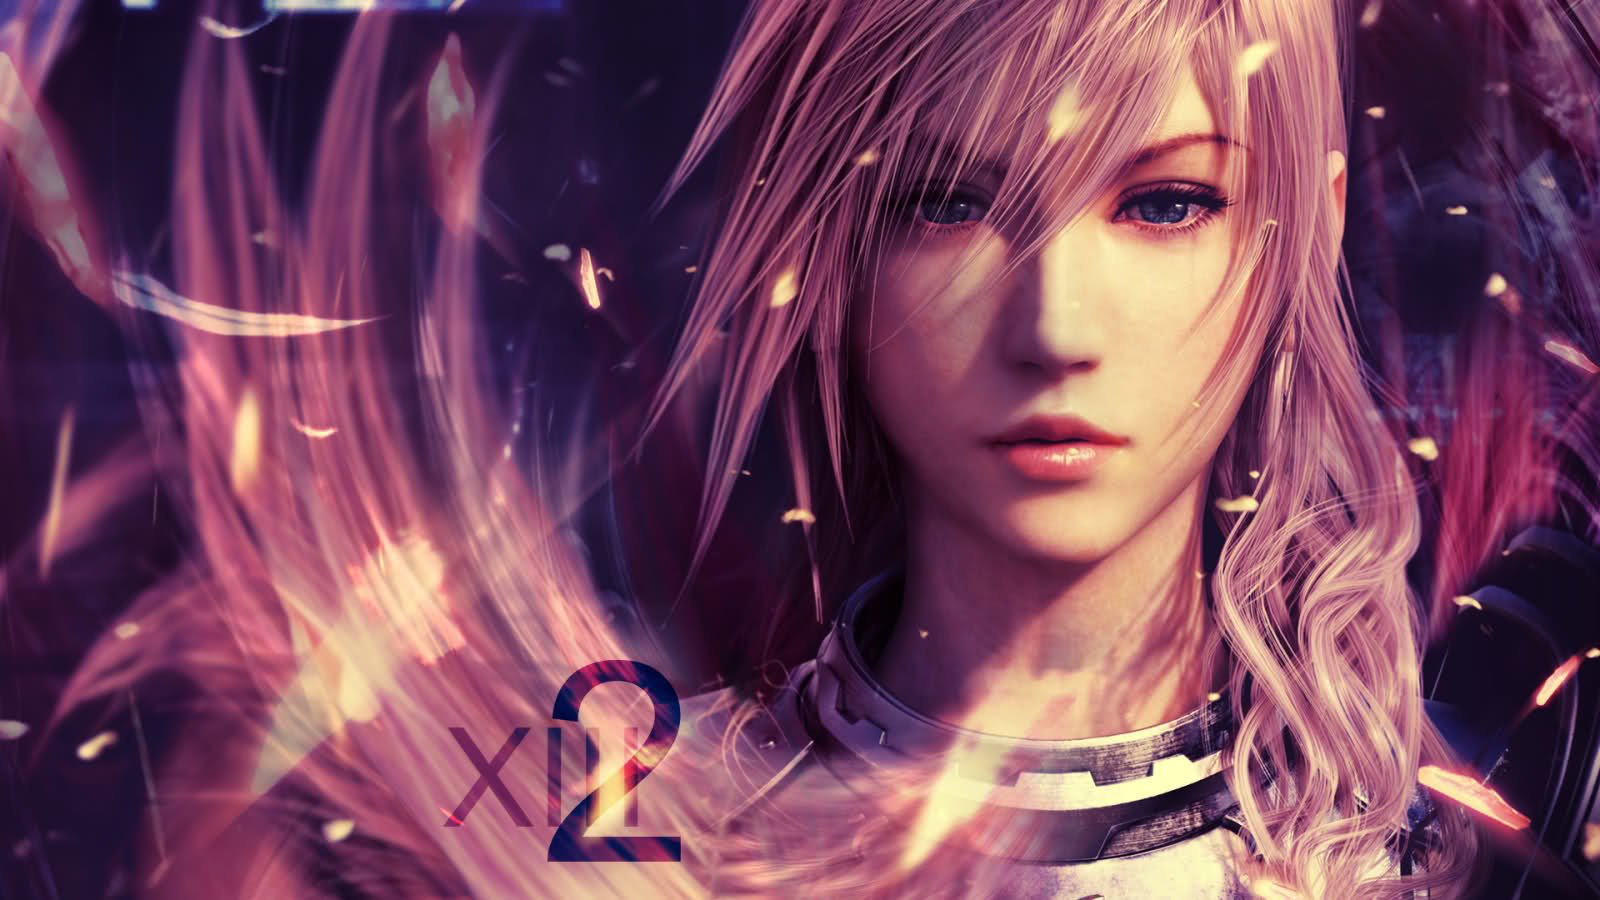 78 lightning (final fantasy) hd wallpapers | background images